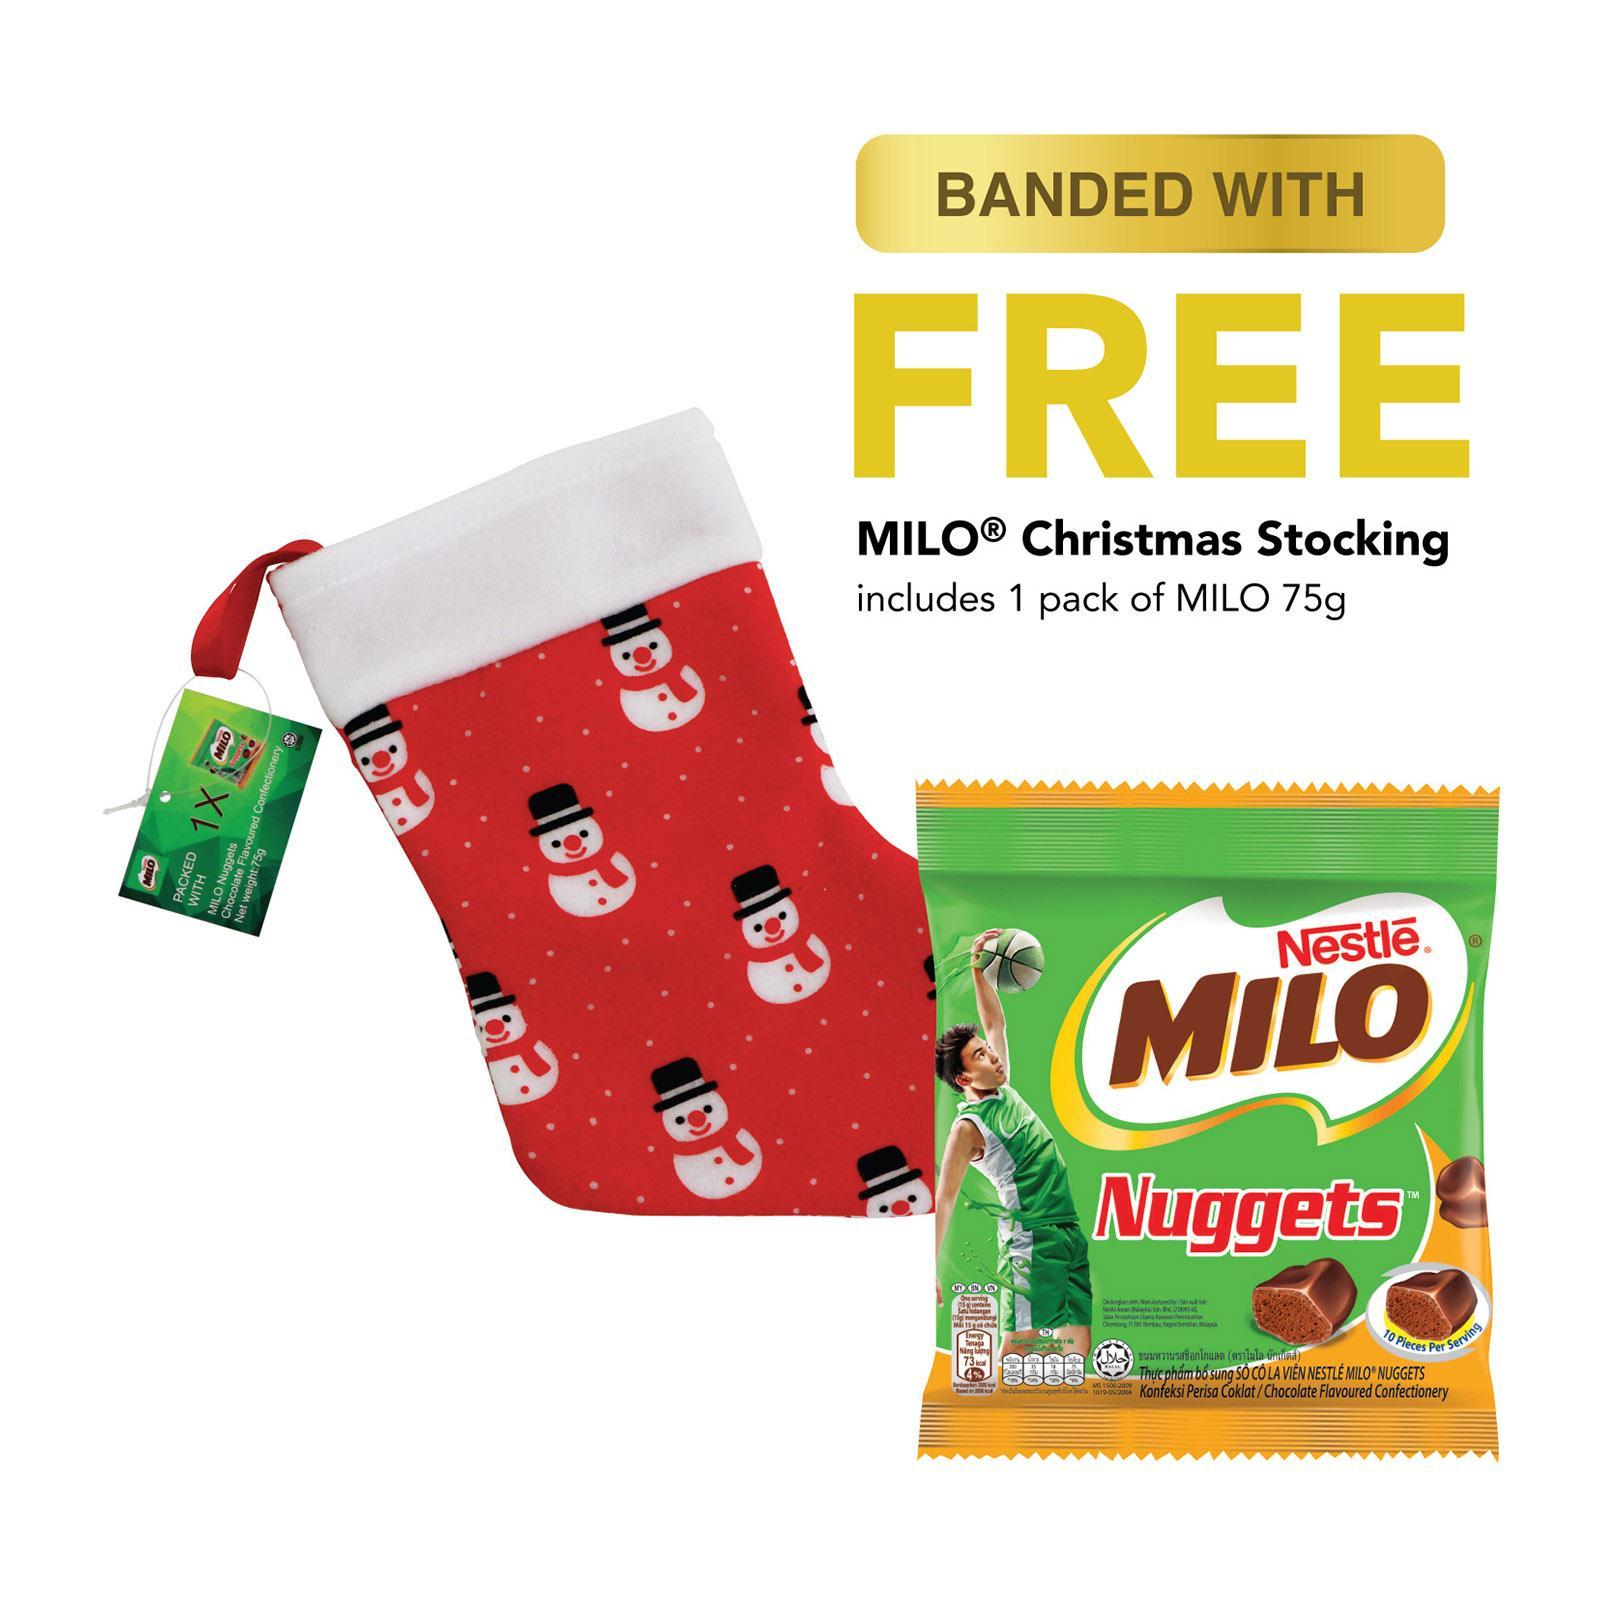 Milo Nuggets Christmas Stocking (Packed with MILO Nuggets)